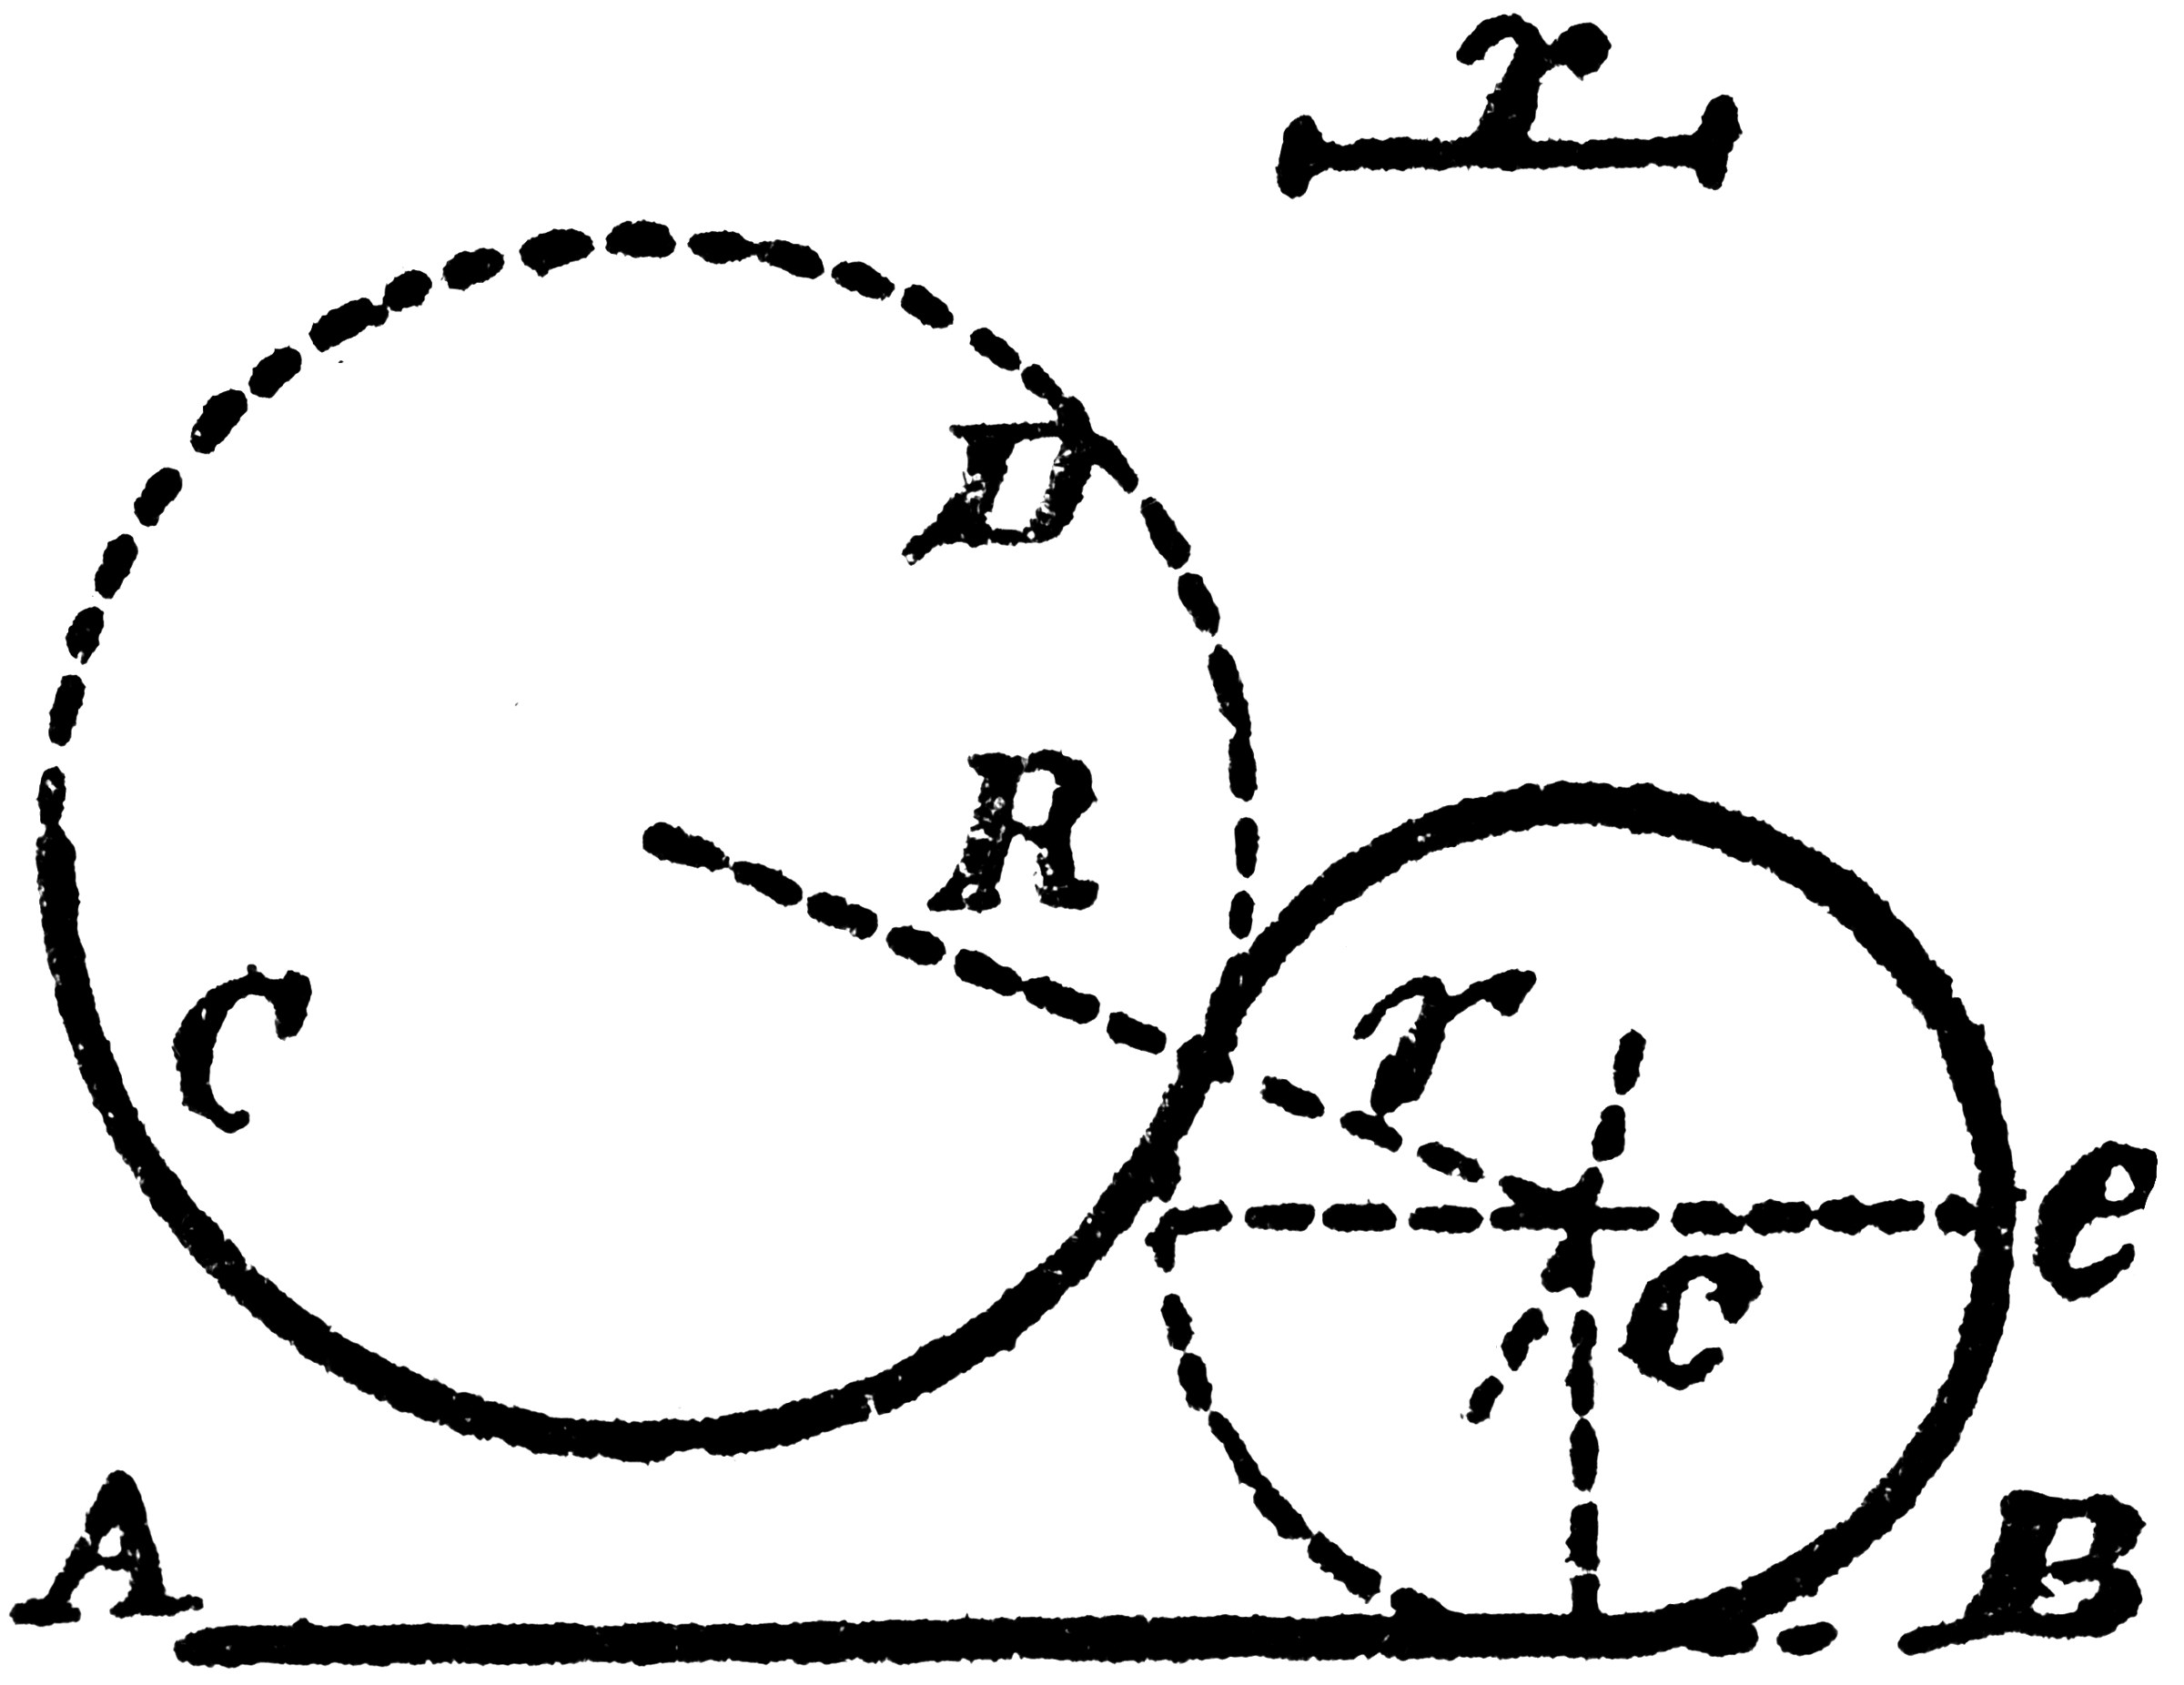 Construction Of A Circle Tangent To A Line And A Circle